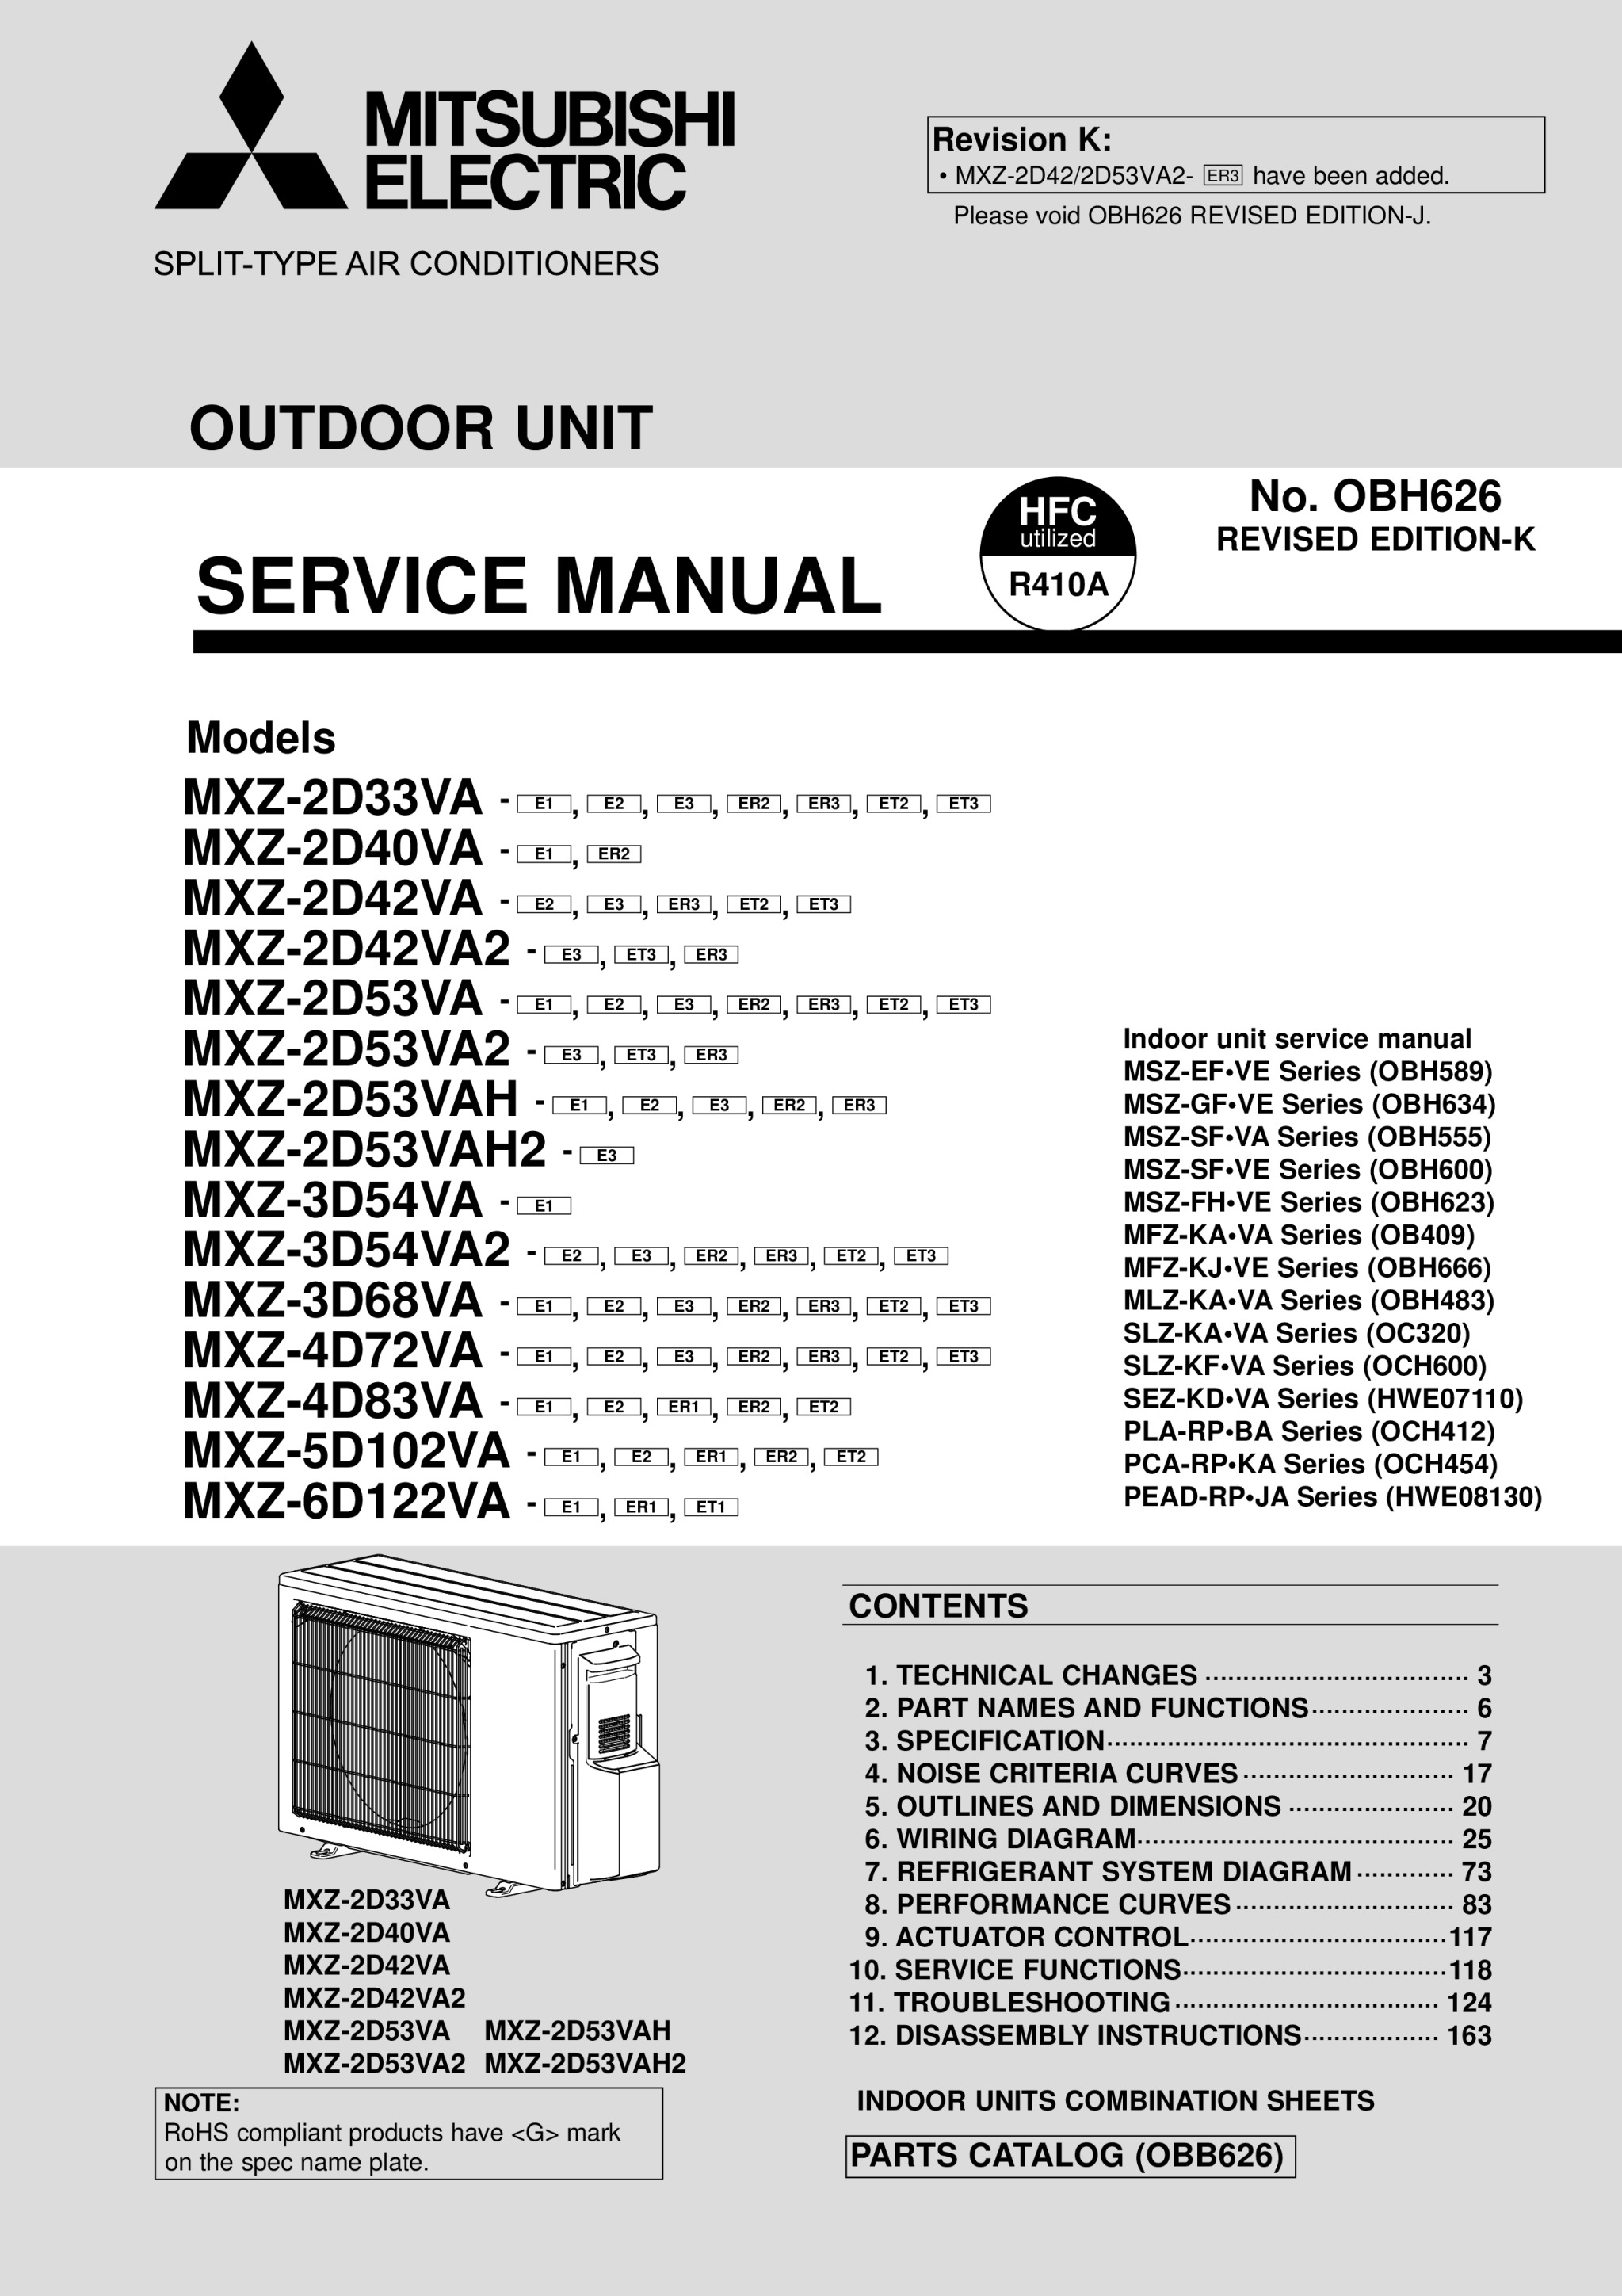 Yamaha yfm250xn 2001 supplementary service repair manual array k 9 email manual rh k 9 email manual tempower us fandeluxe Gallery